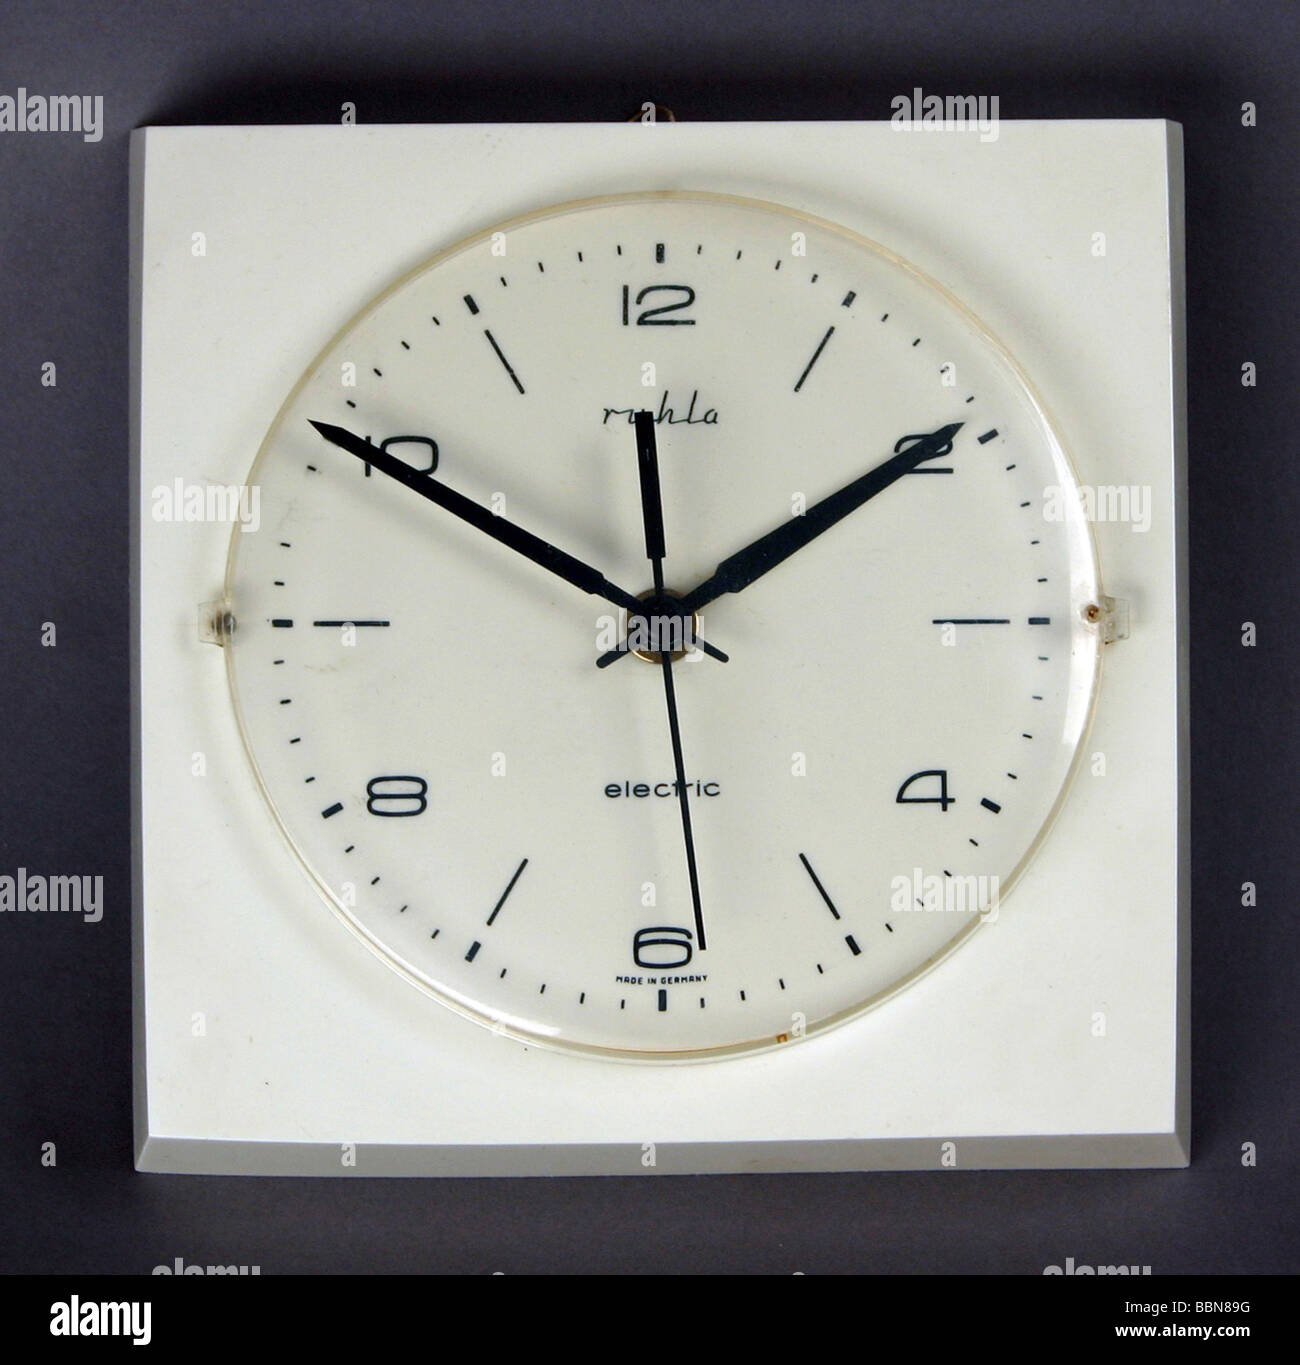 Clocks wall clock for kitchen ruhla electric made by veb stock clocks wall clock for kitchen ruhla electric made by veb uhrenkombinat ruhla gdr 1970s historic historical 20th century amipublicfo Image collections